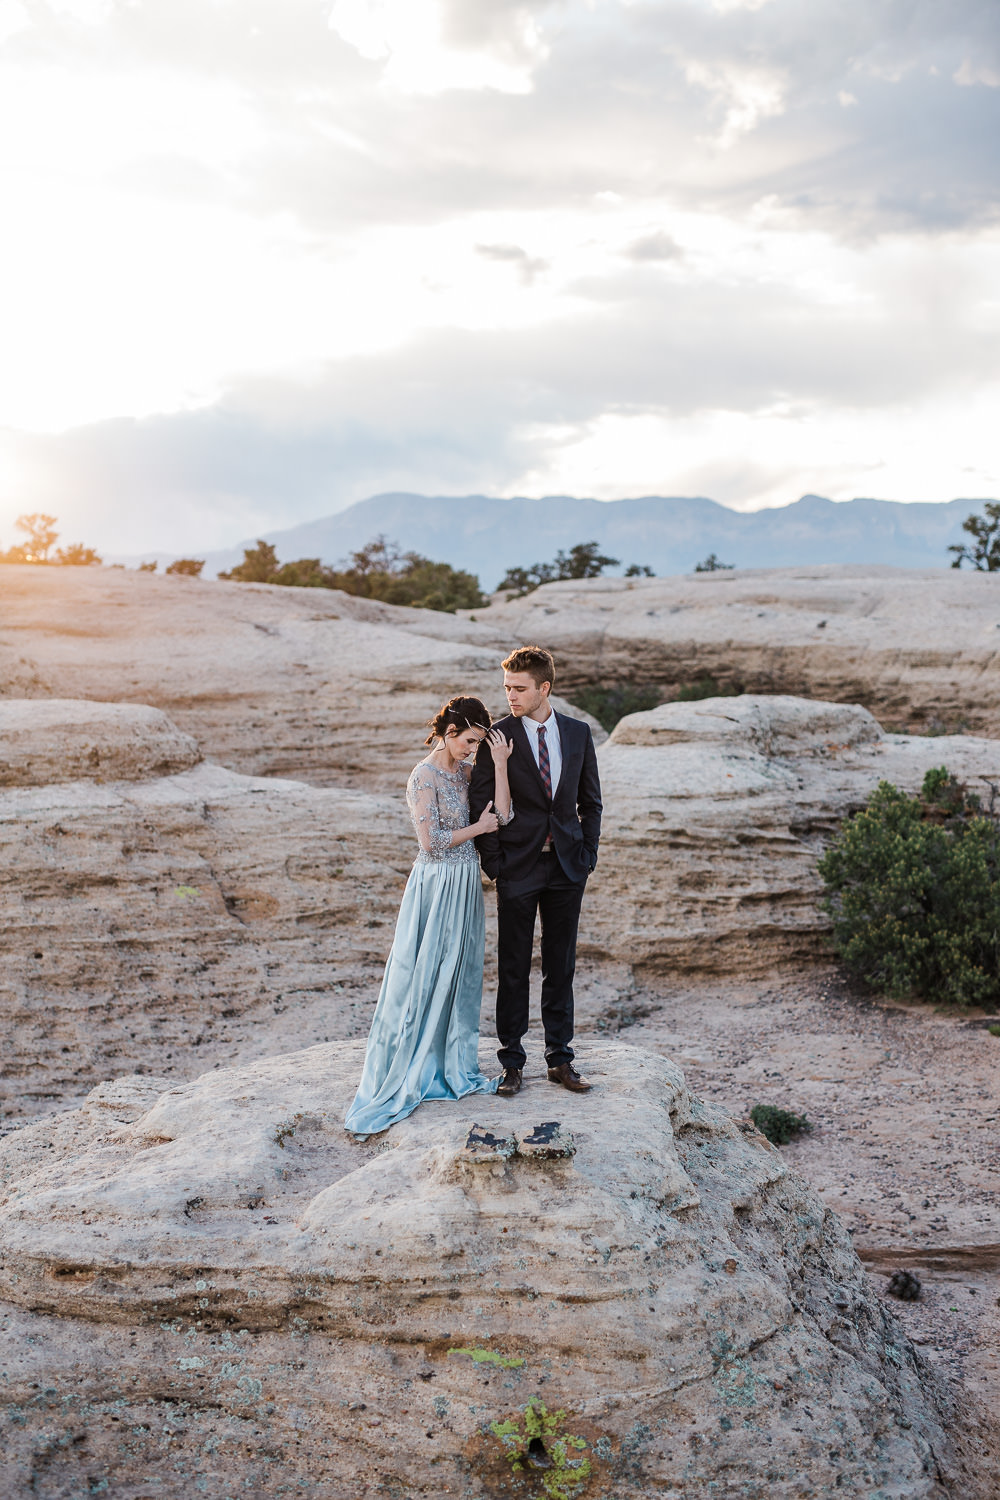 KyleLovesTori-Zion-National-Park-Adventure-Bridals-24.jpg